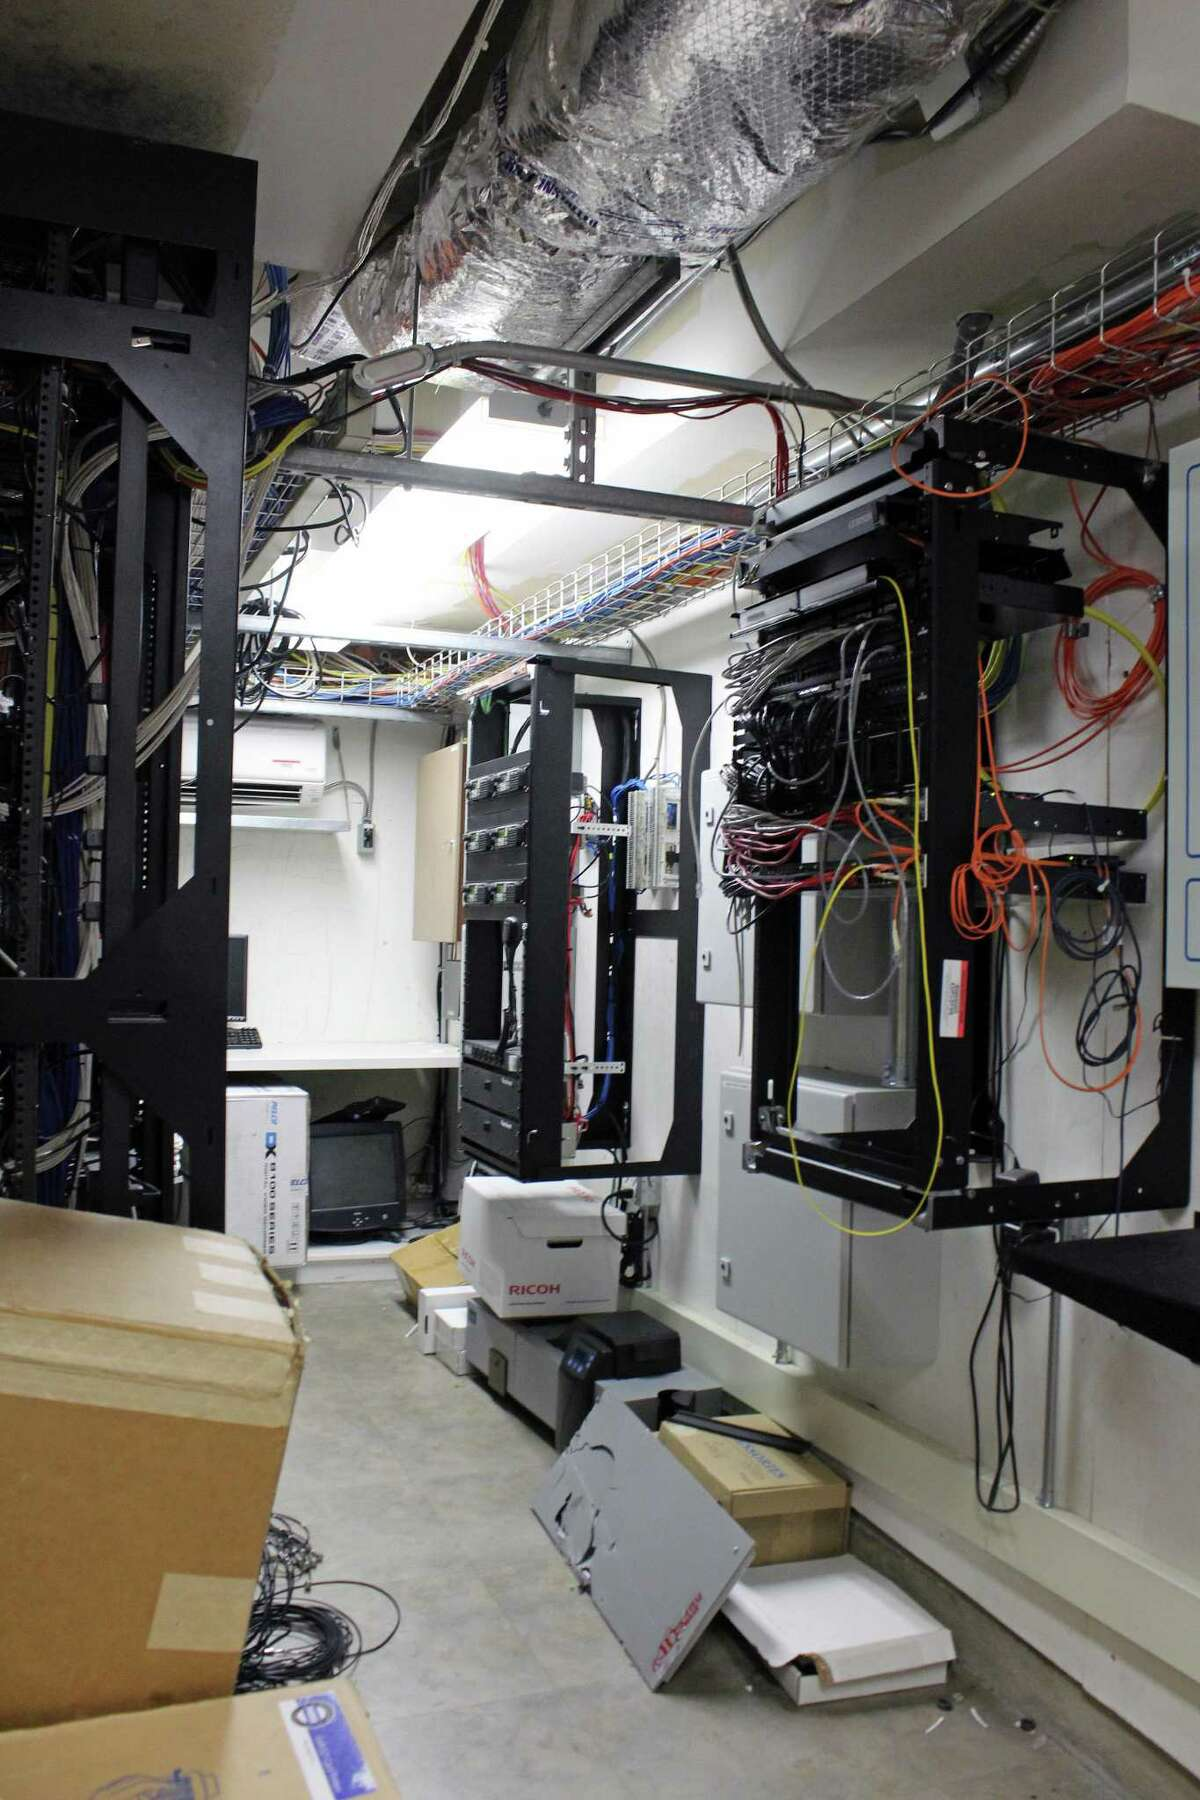 Much of the needed wiring and infrastructure that would be used by a combined Fairfield-Westport emergency dispatch center already exists on the former General Electric corporate headquarters. The property is now owned by Sacred Heart University. Fairfield,CT. 3/14/18